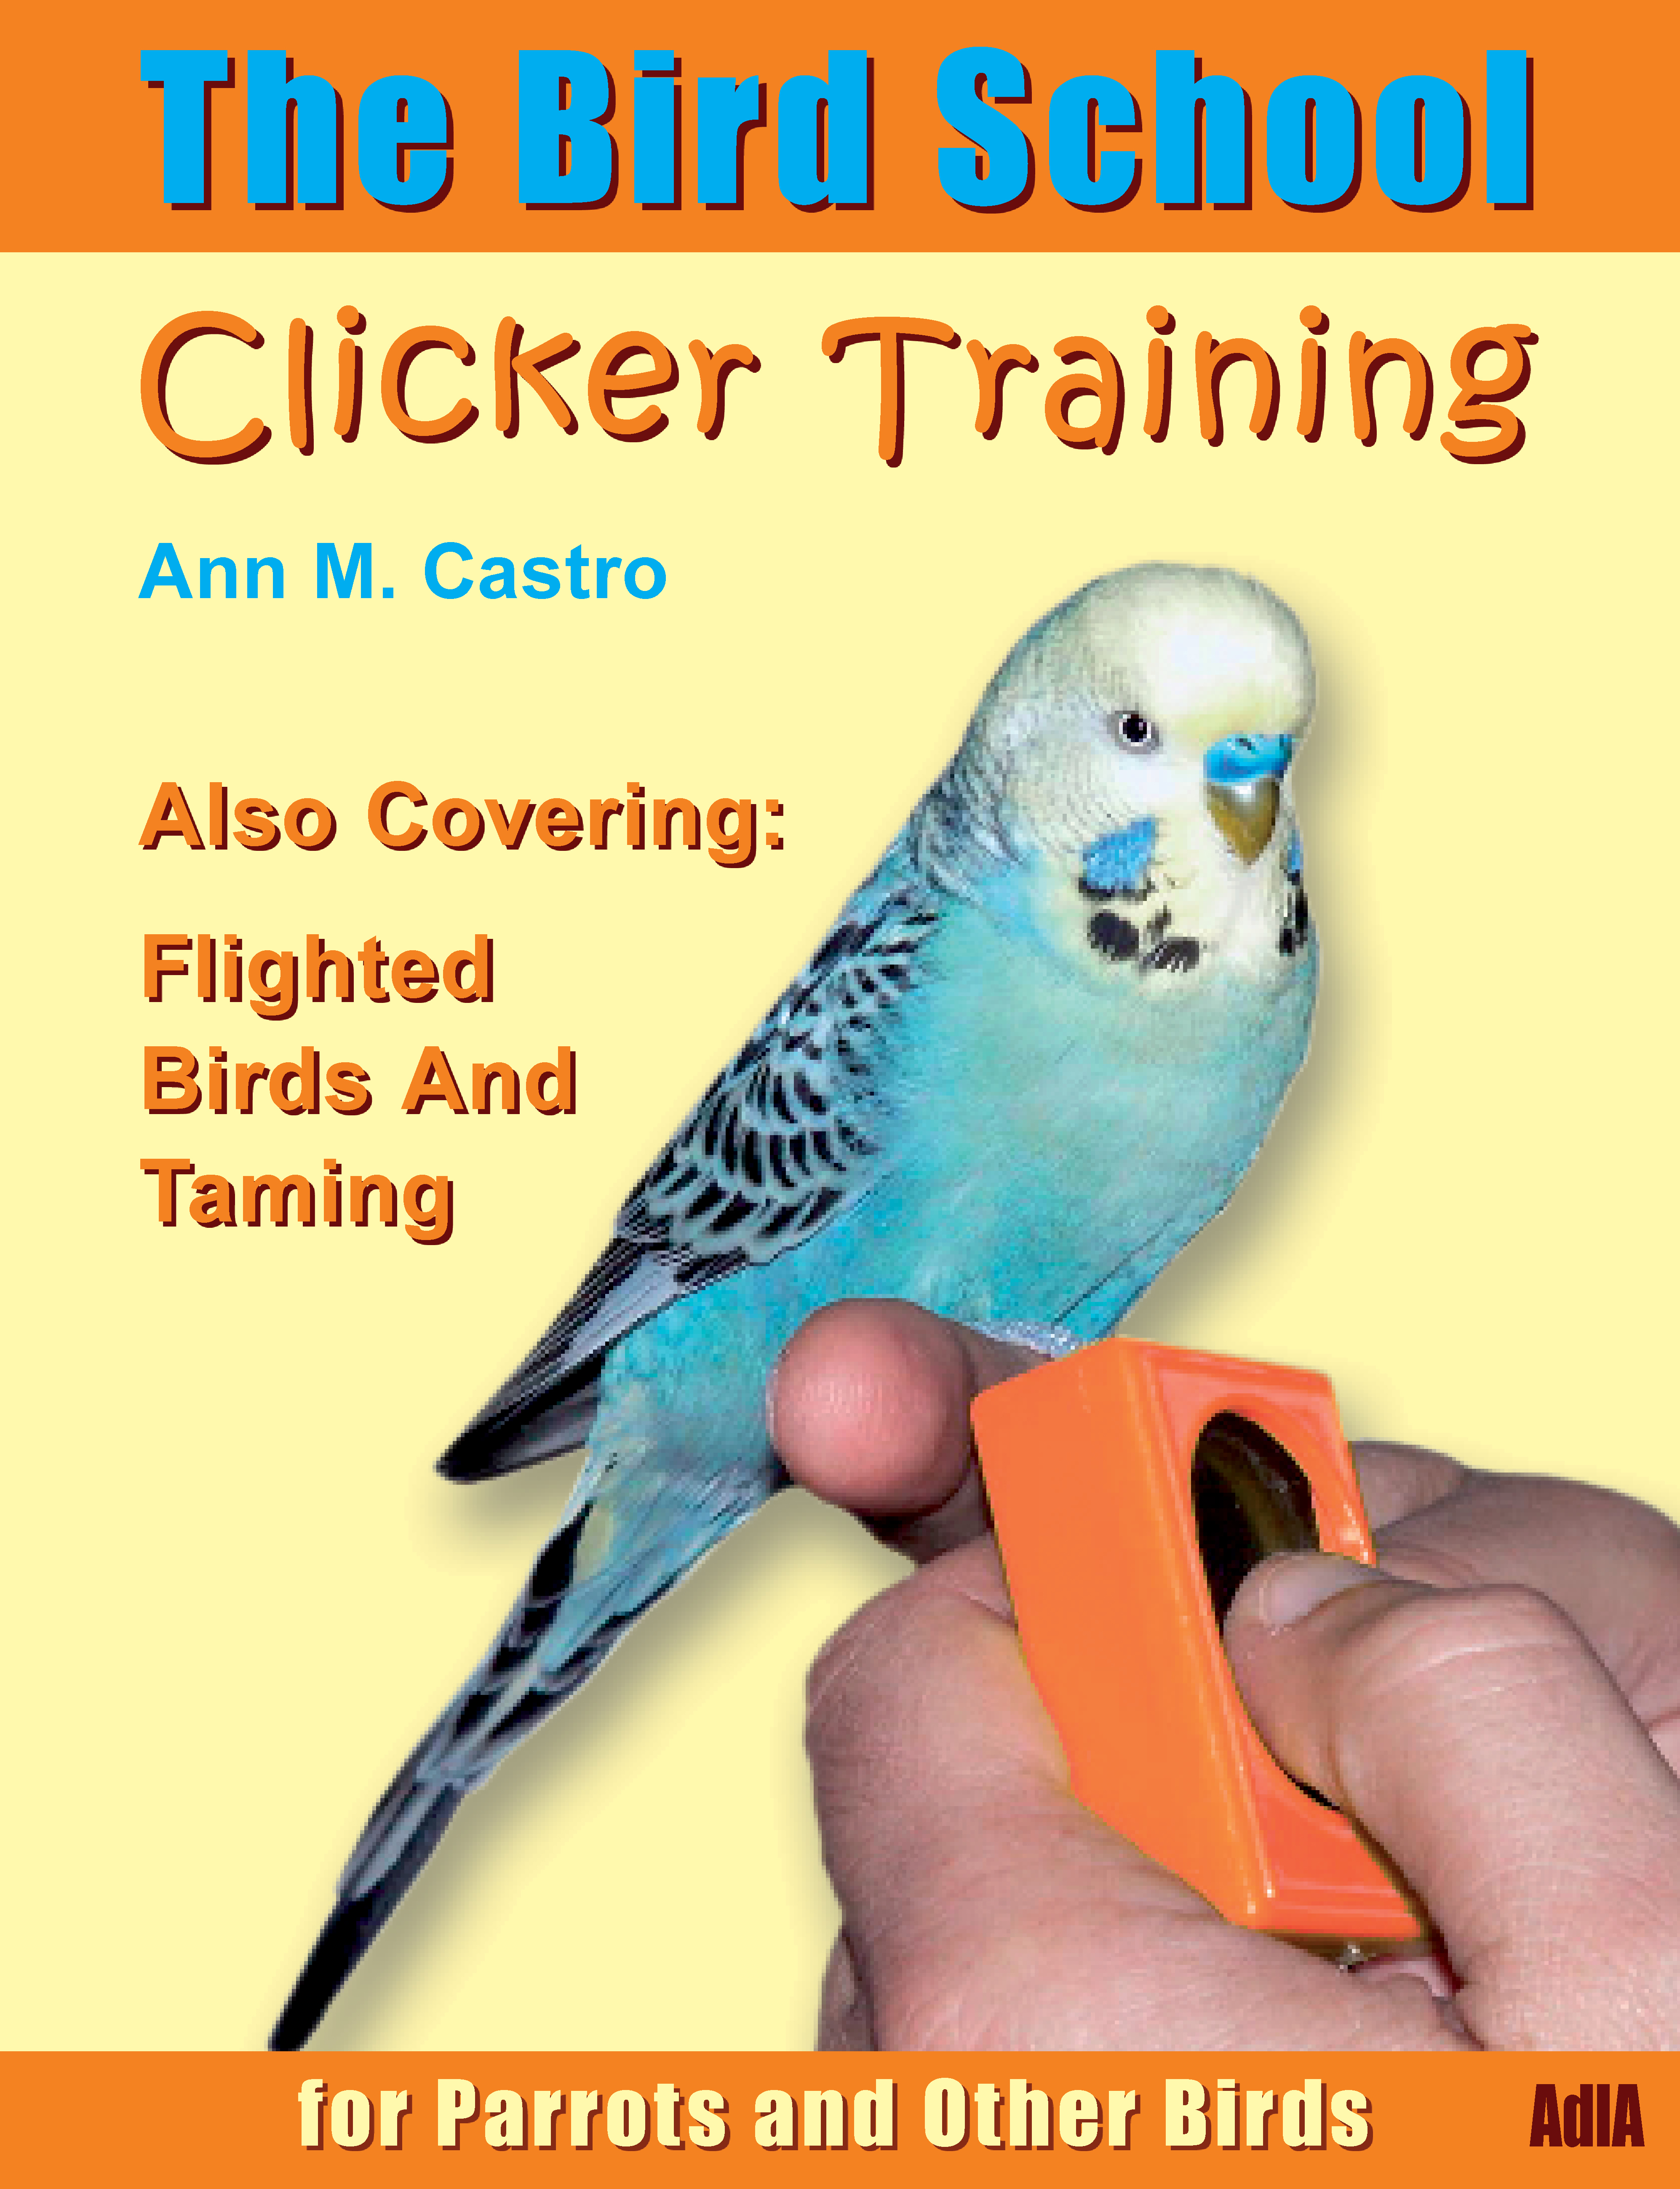 The Bird School. Clicker Training for Parrots & Other Birds by Ann Castro